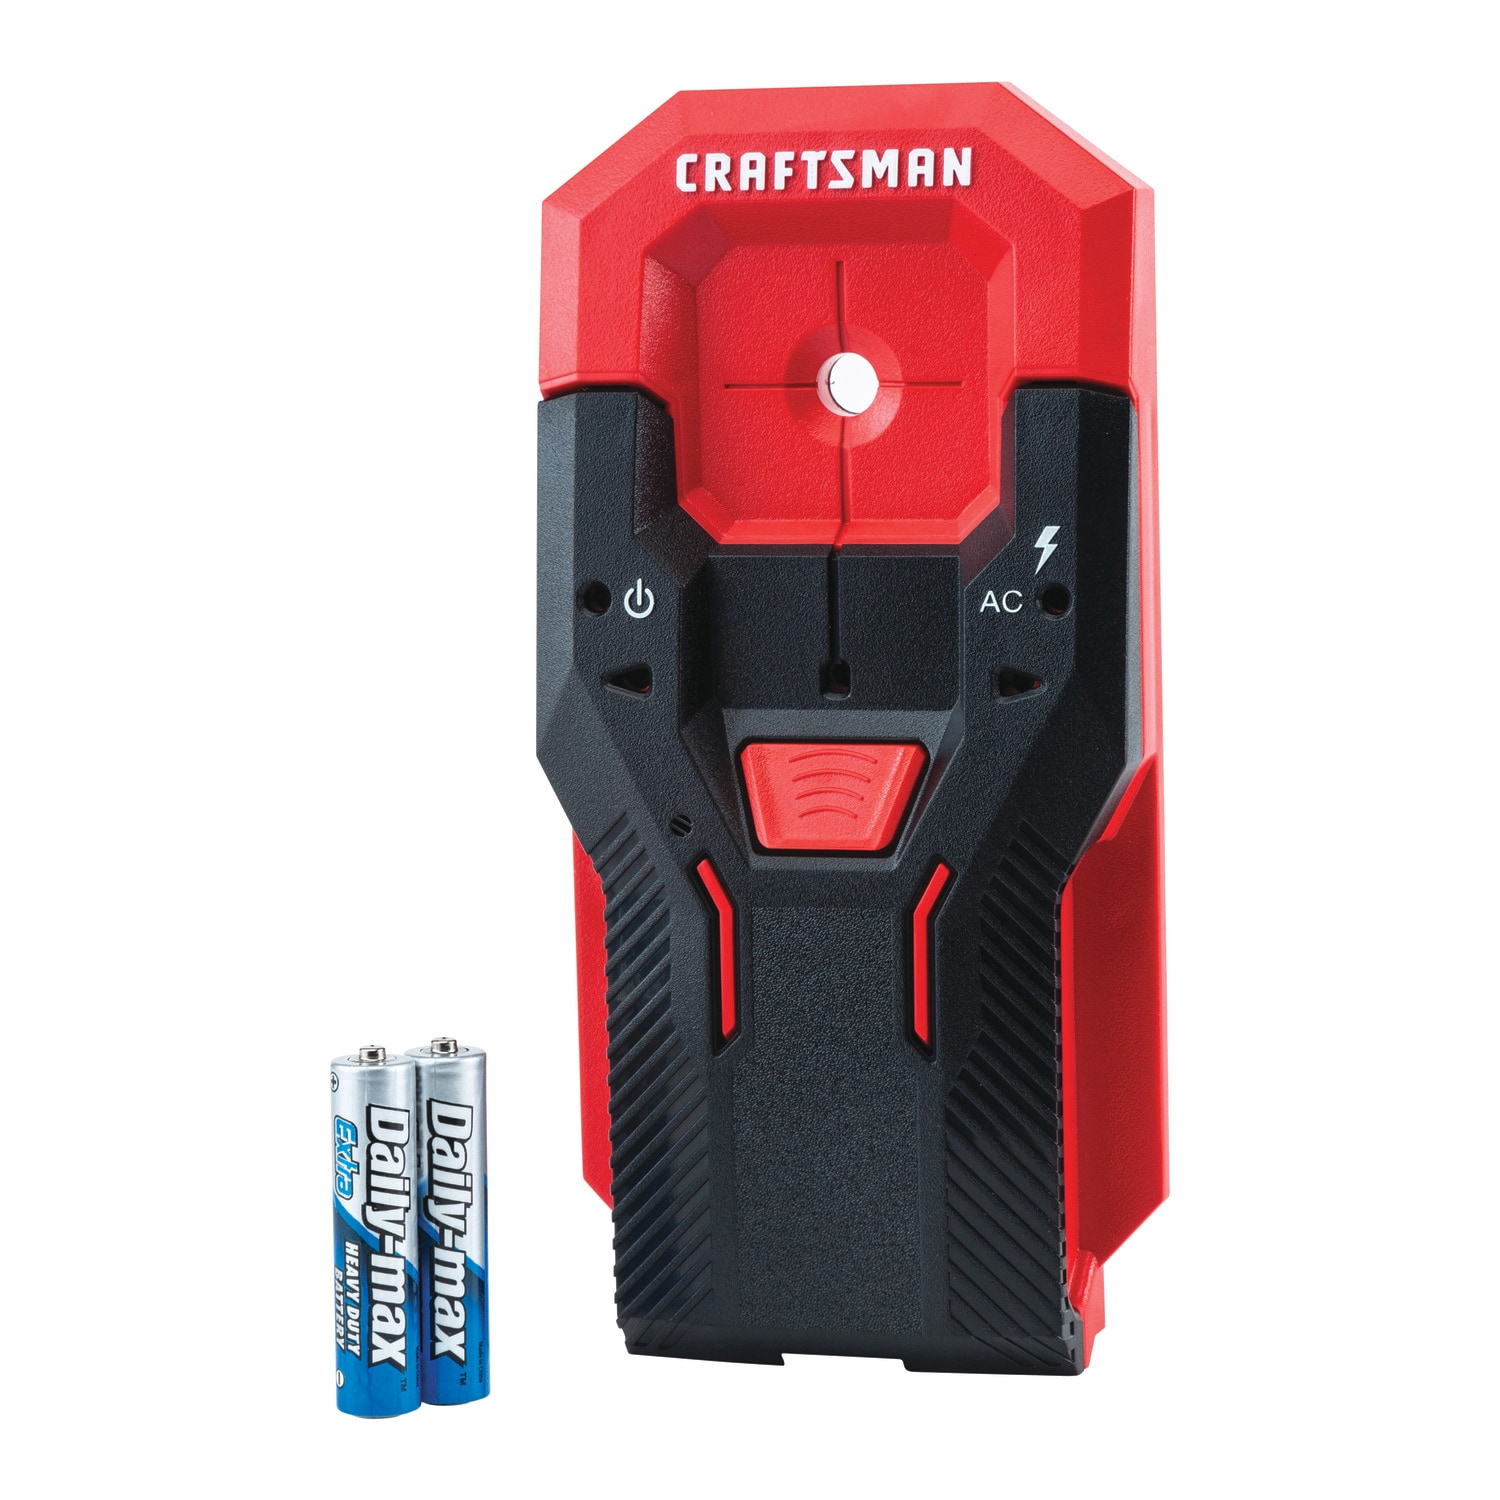 CRAFTSMAN 0.75-in Scan Depth Metal and Wood Stud Finder in Red | CMHT77620